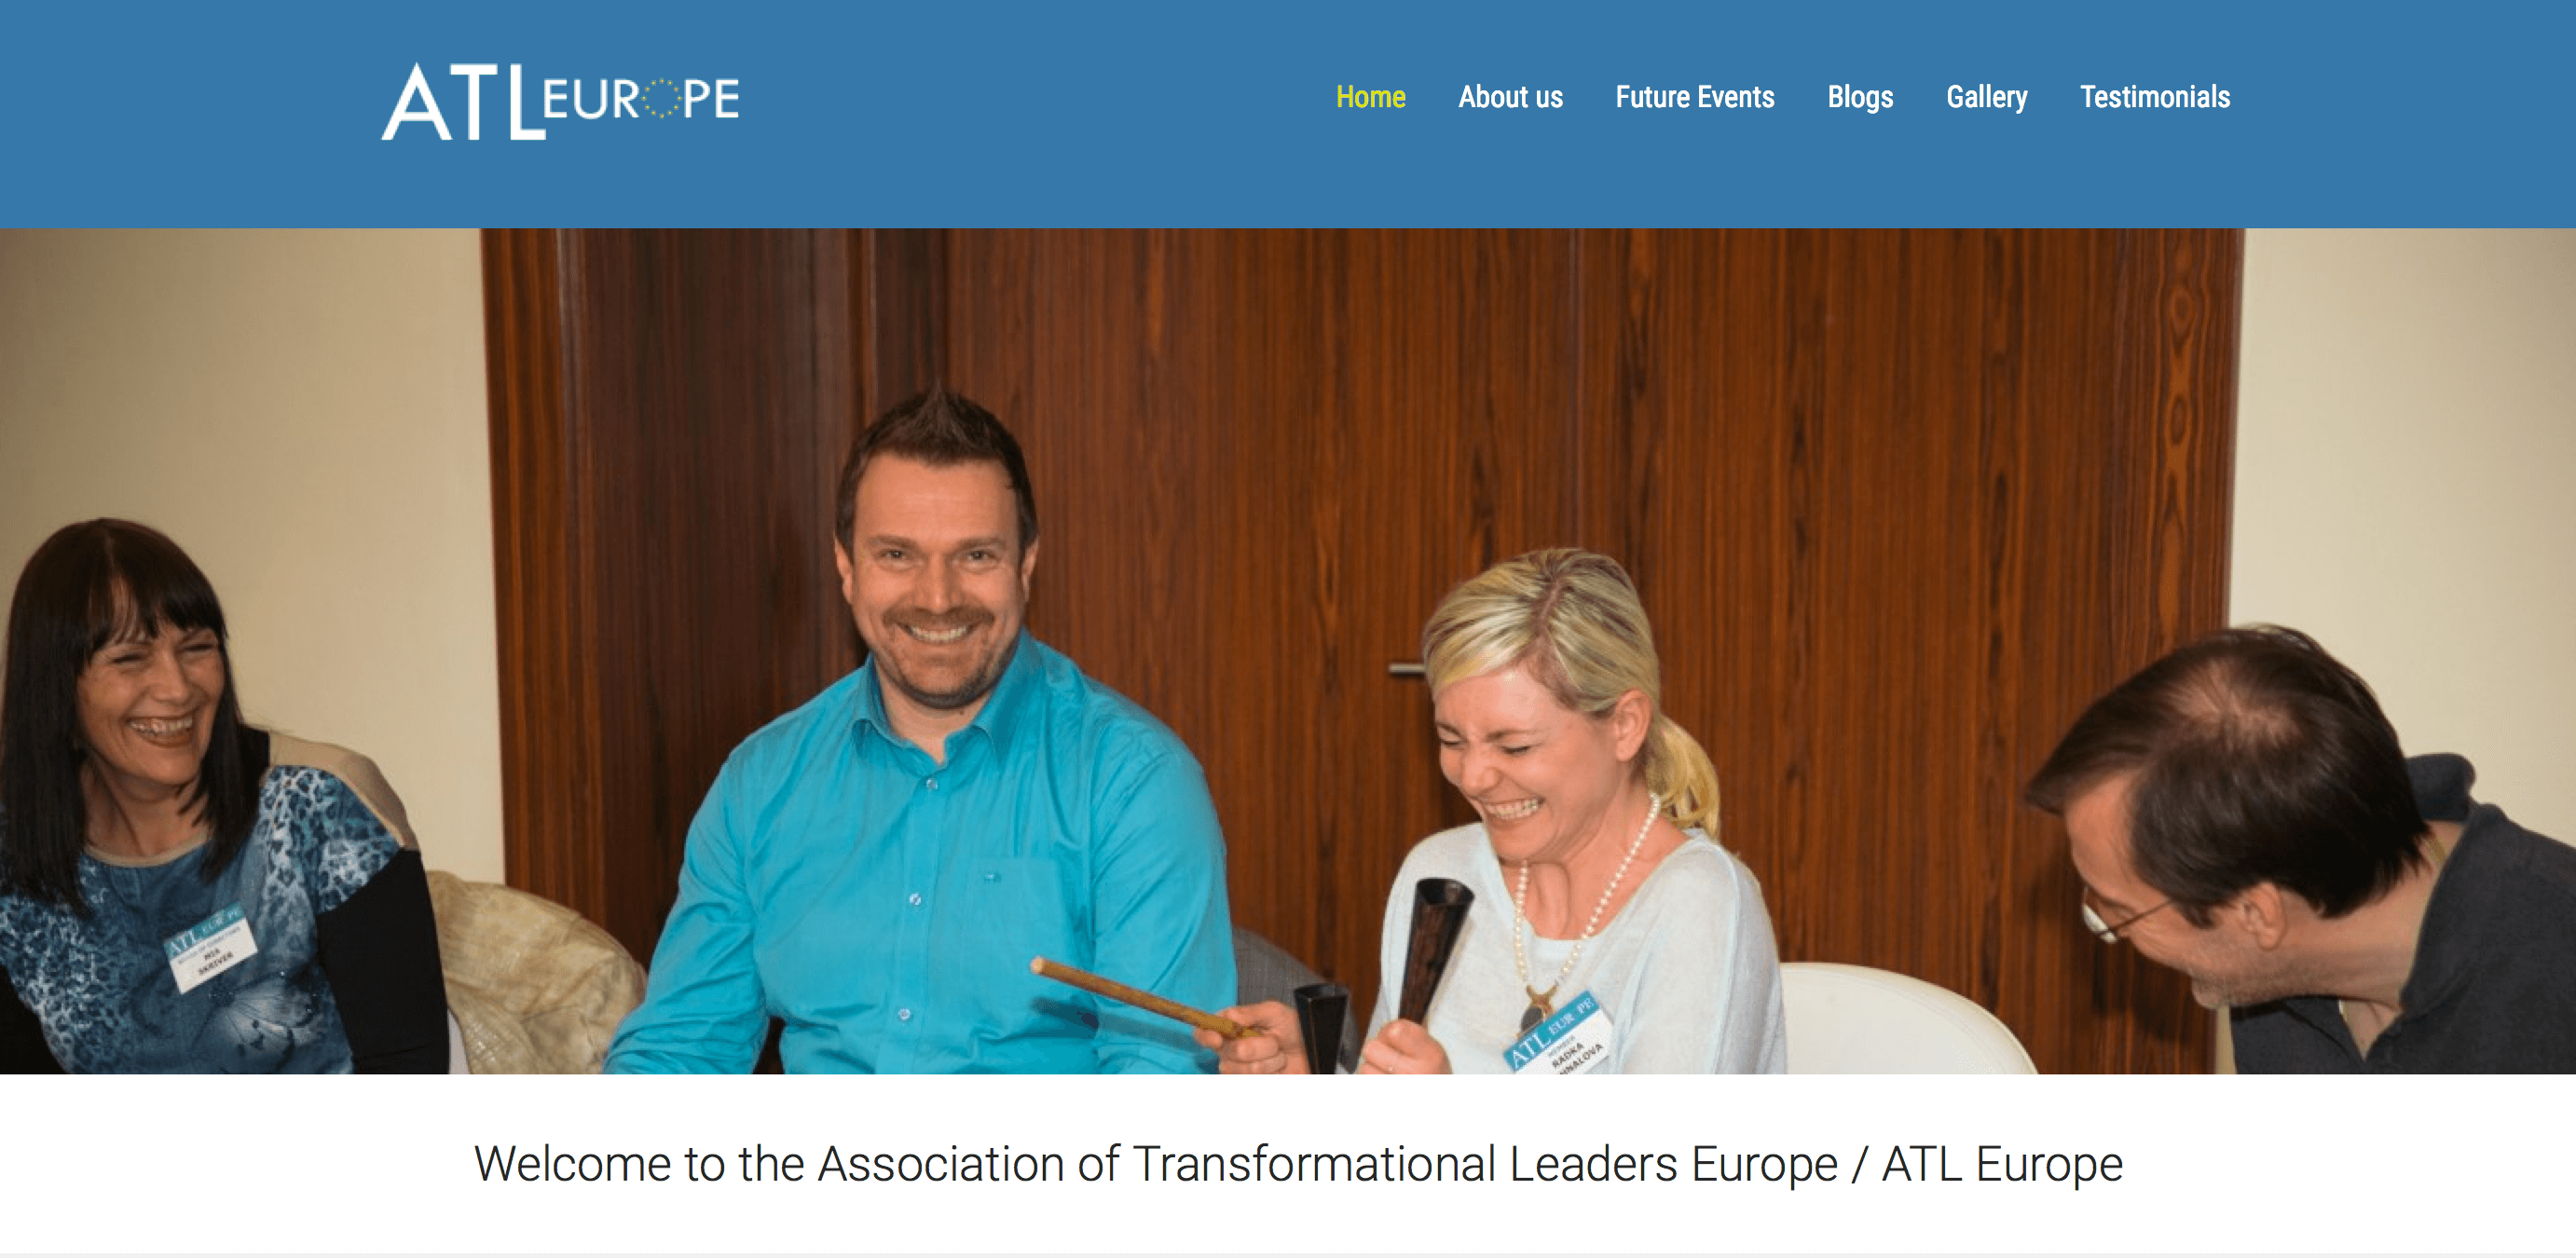 Transformational Leaders Europe / ATL Europe